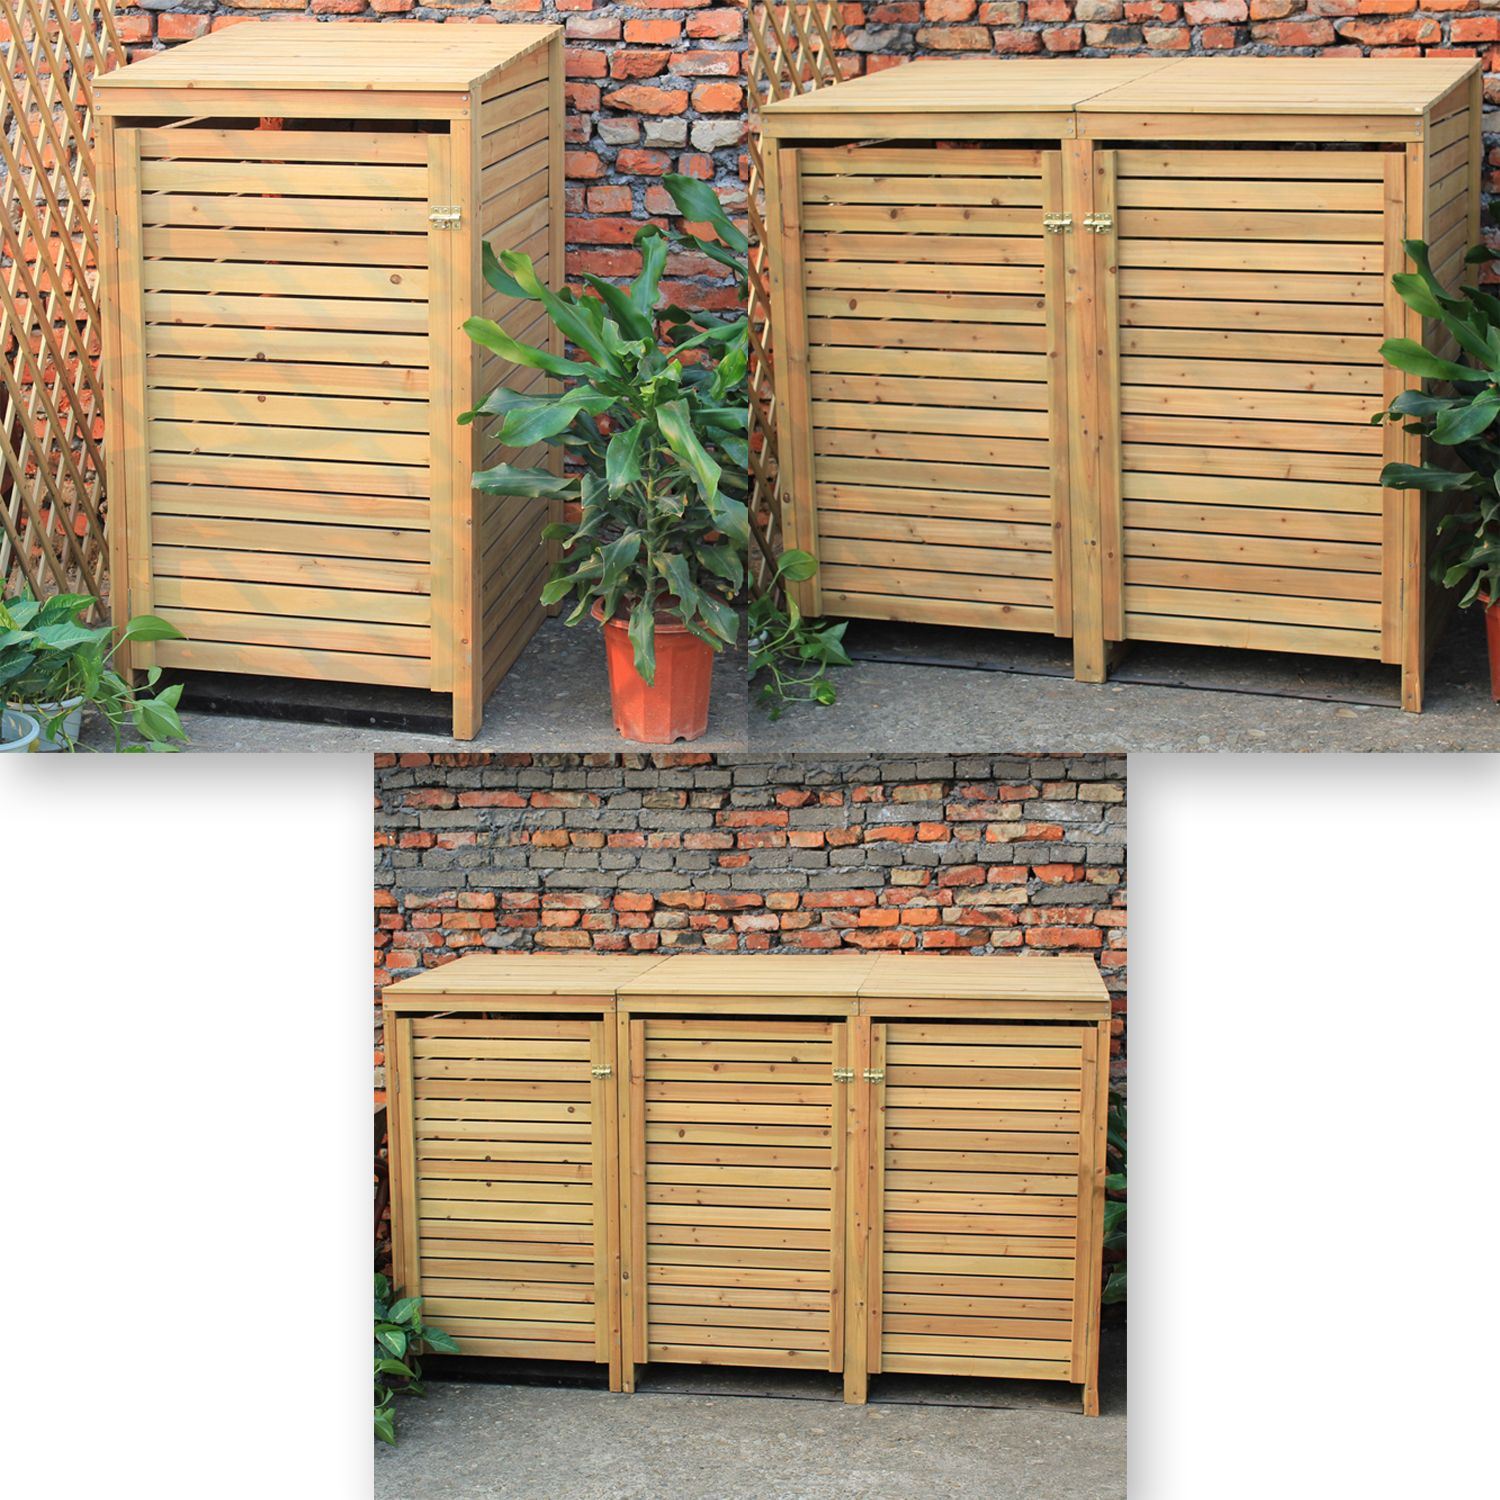 Woodside Wooden Outdoor Wheelie Bin Cover Storage Cupboard Screening Unit Patio Storage Garden Storage Storage Bins